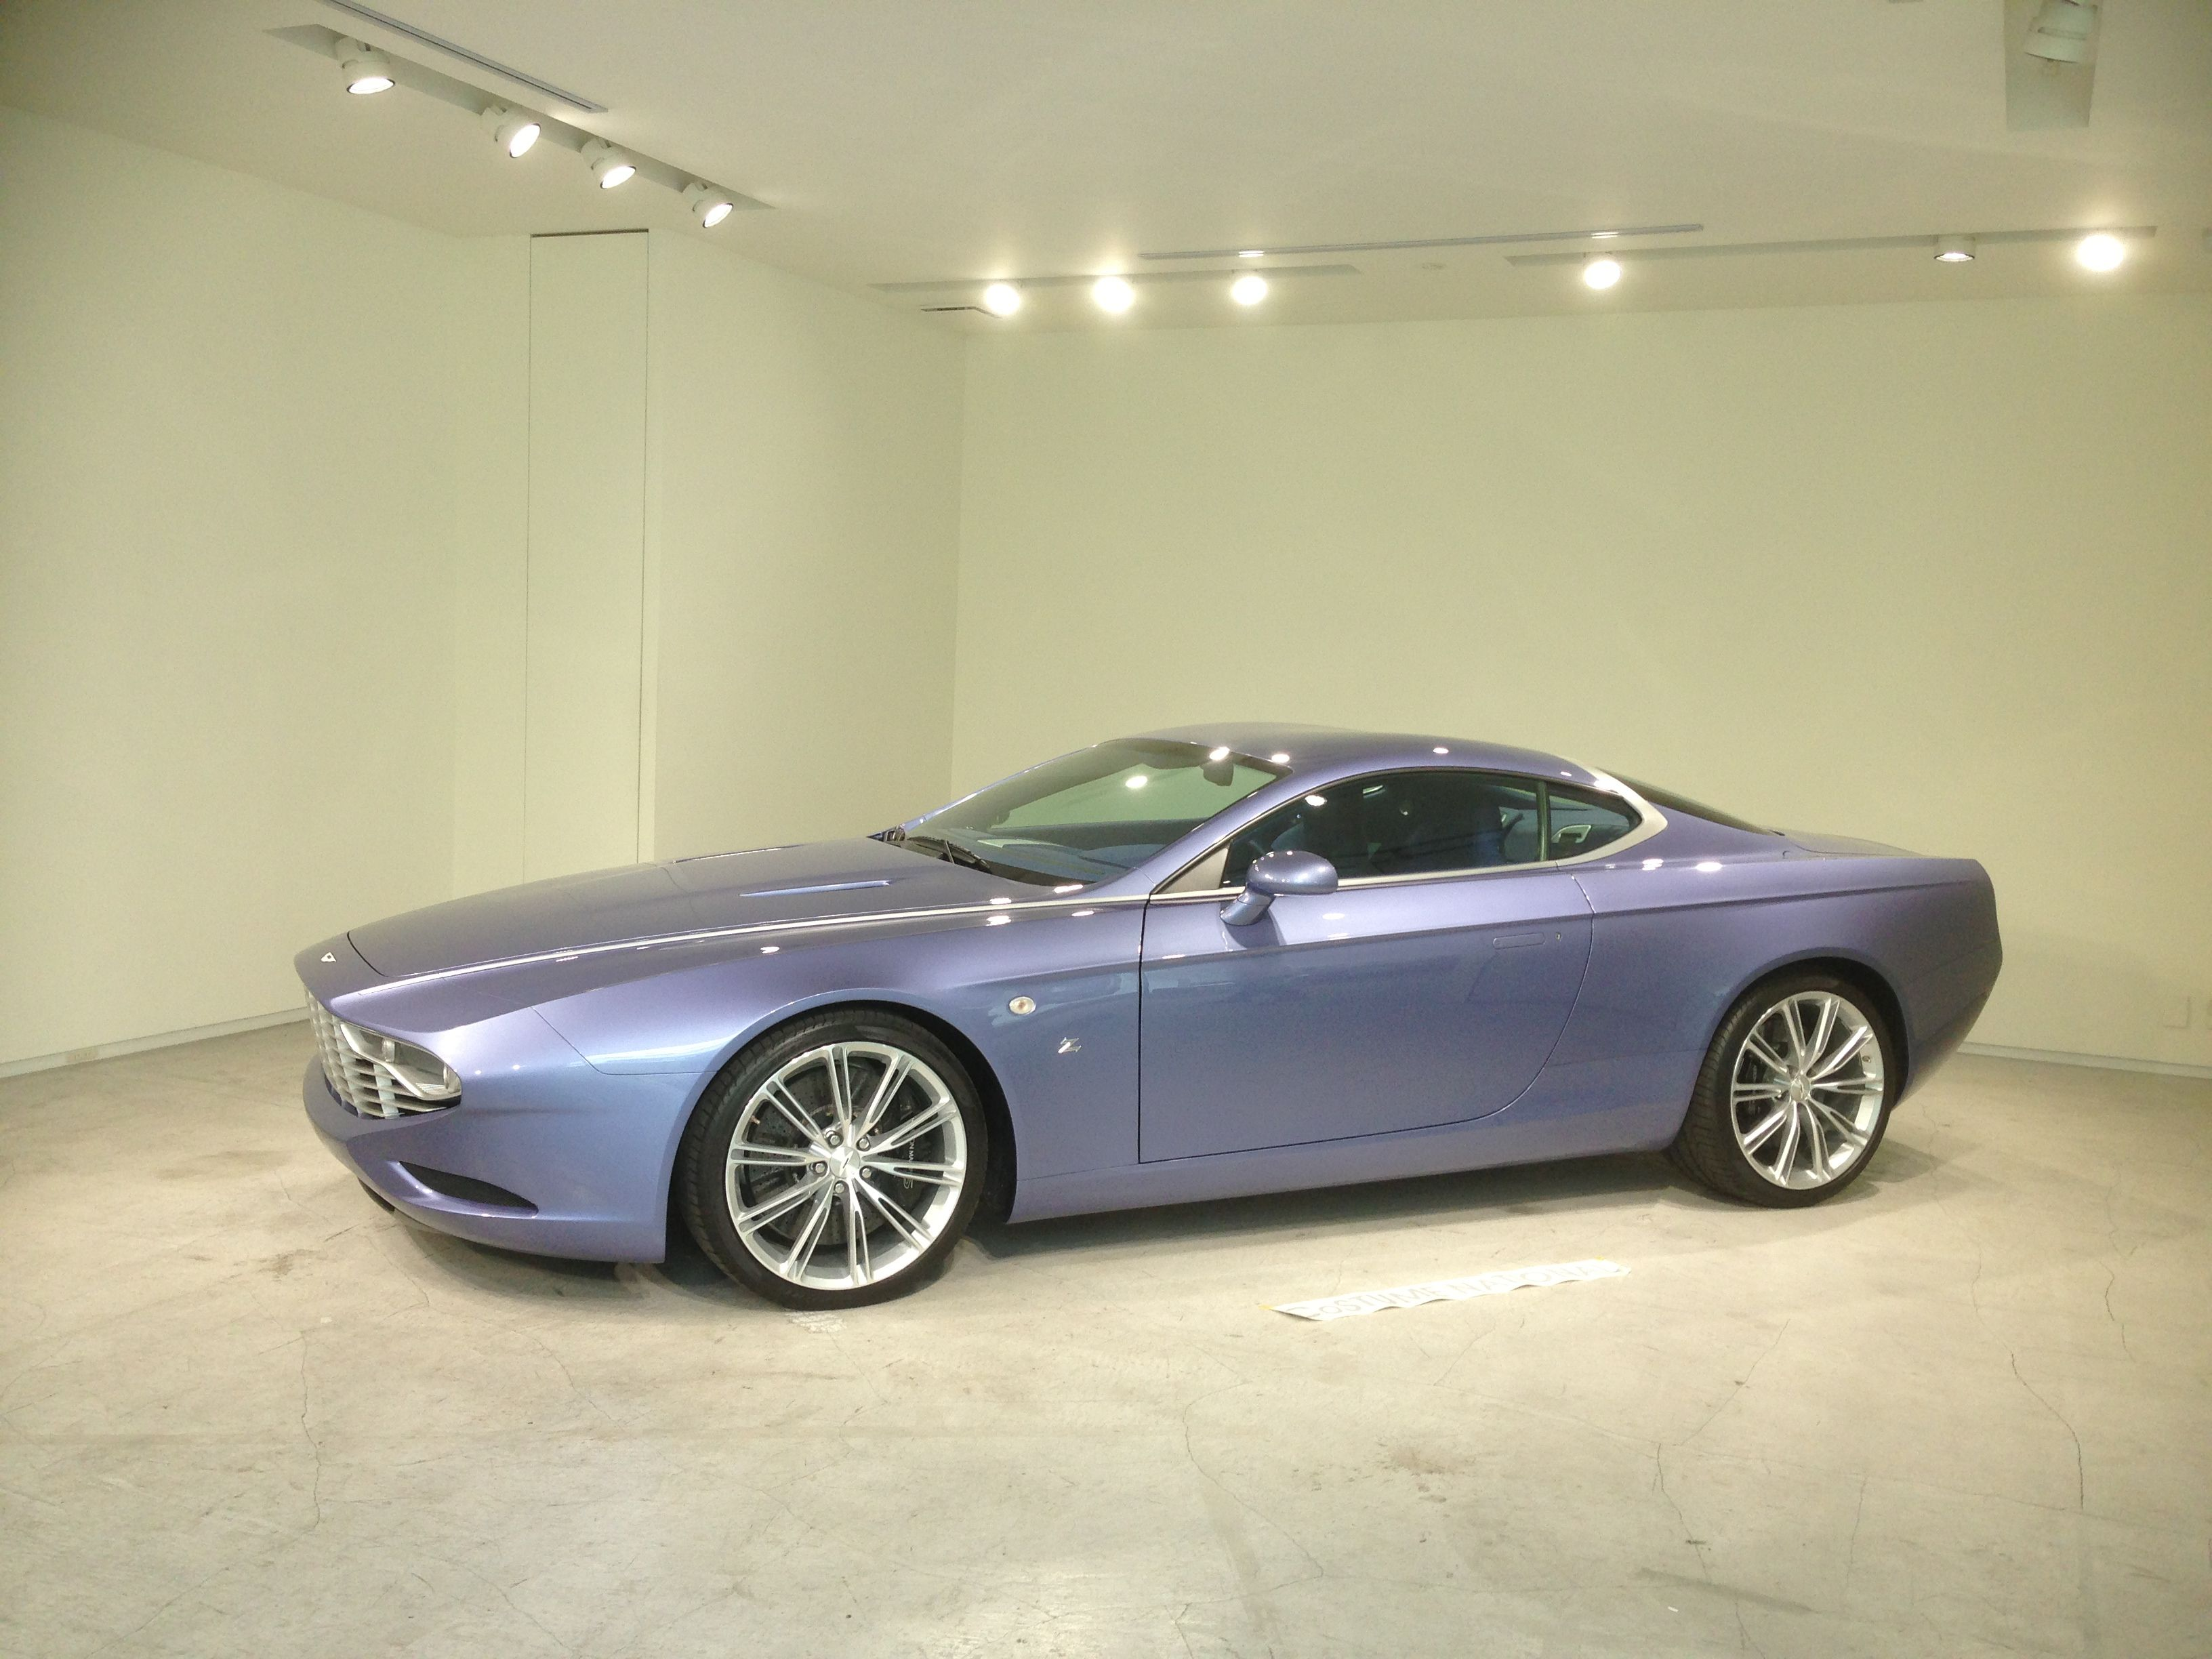 Aston Martin DBS Coupe ZAGATO CENTENNIAL Costume National X ZAGATO collaboration Special debut in Japan